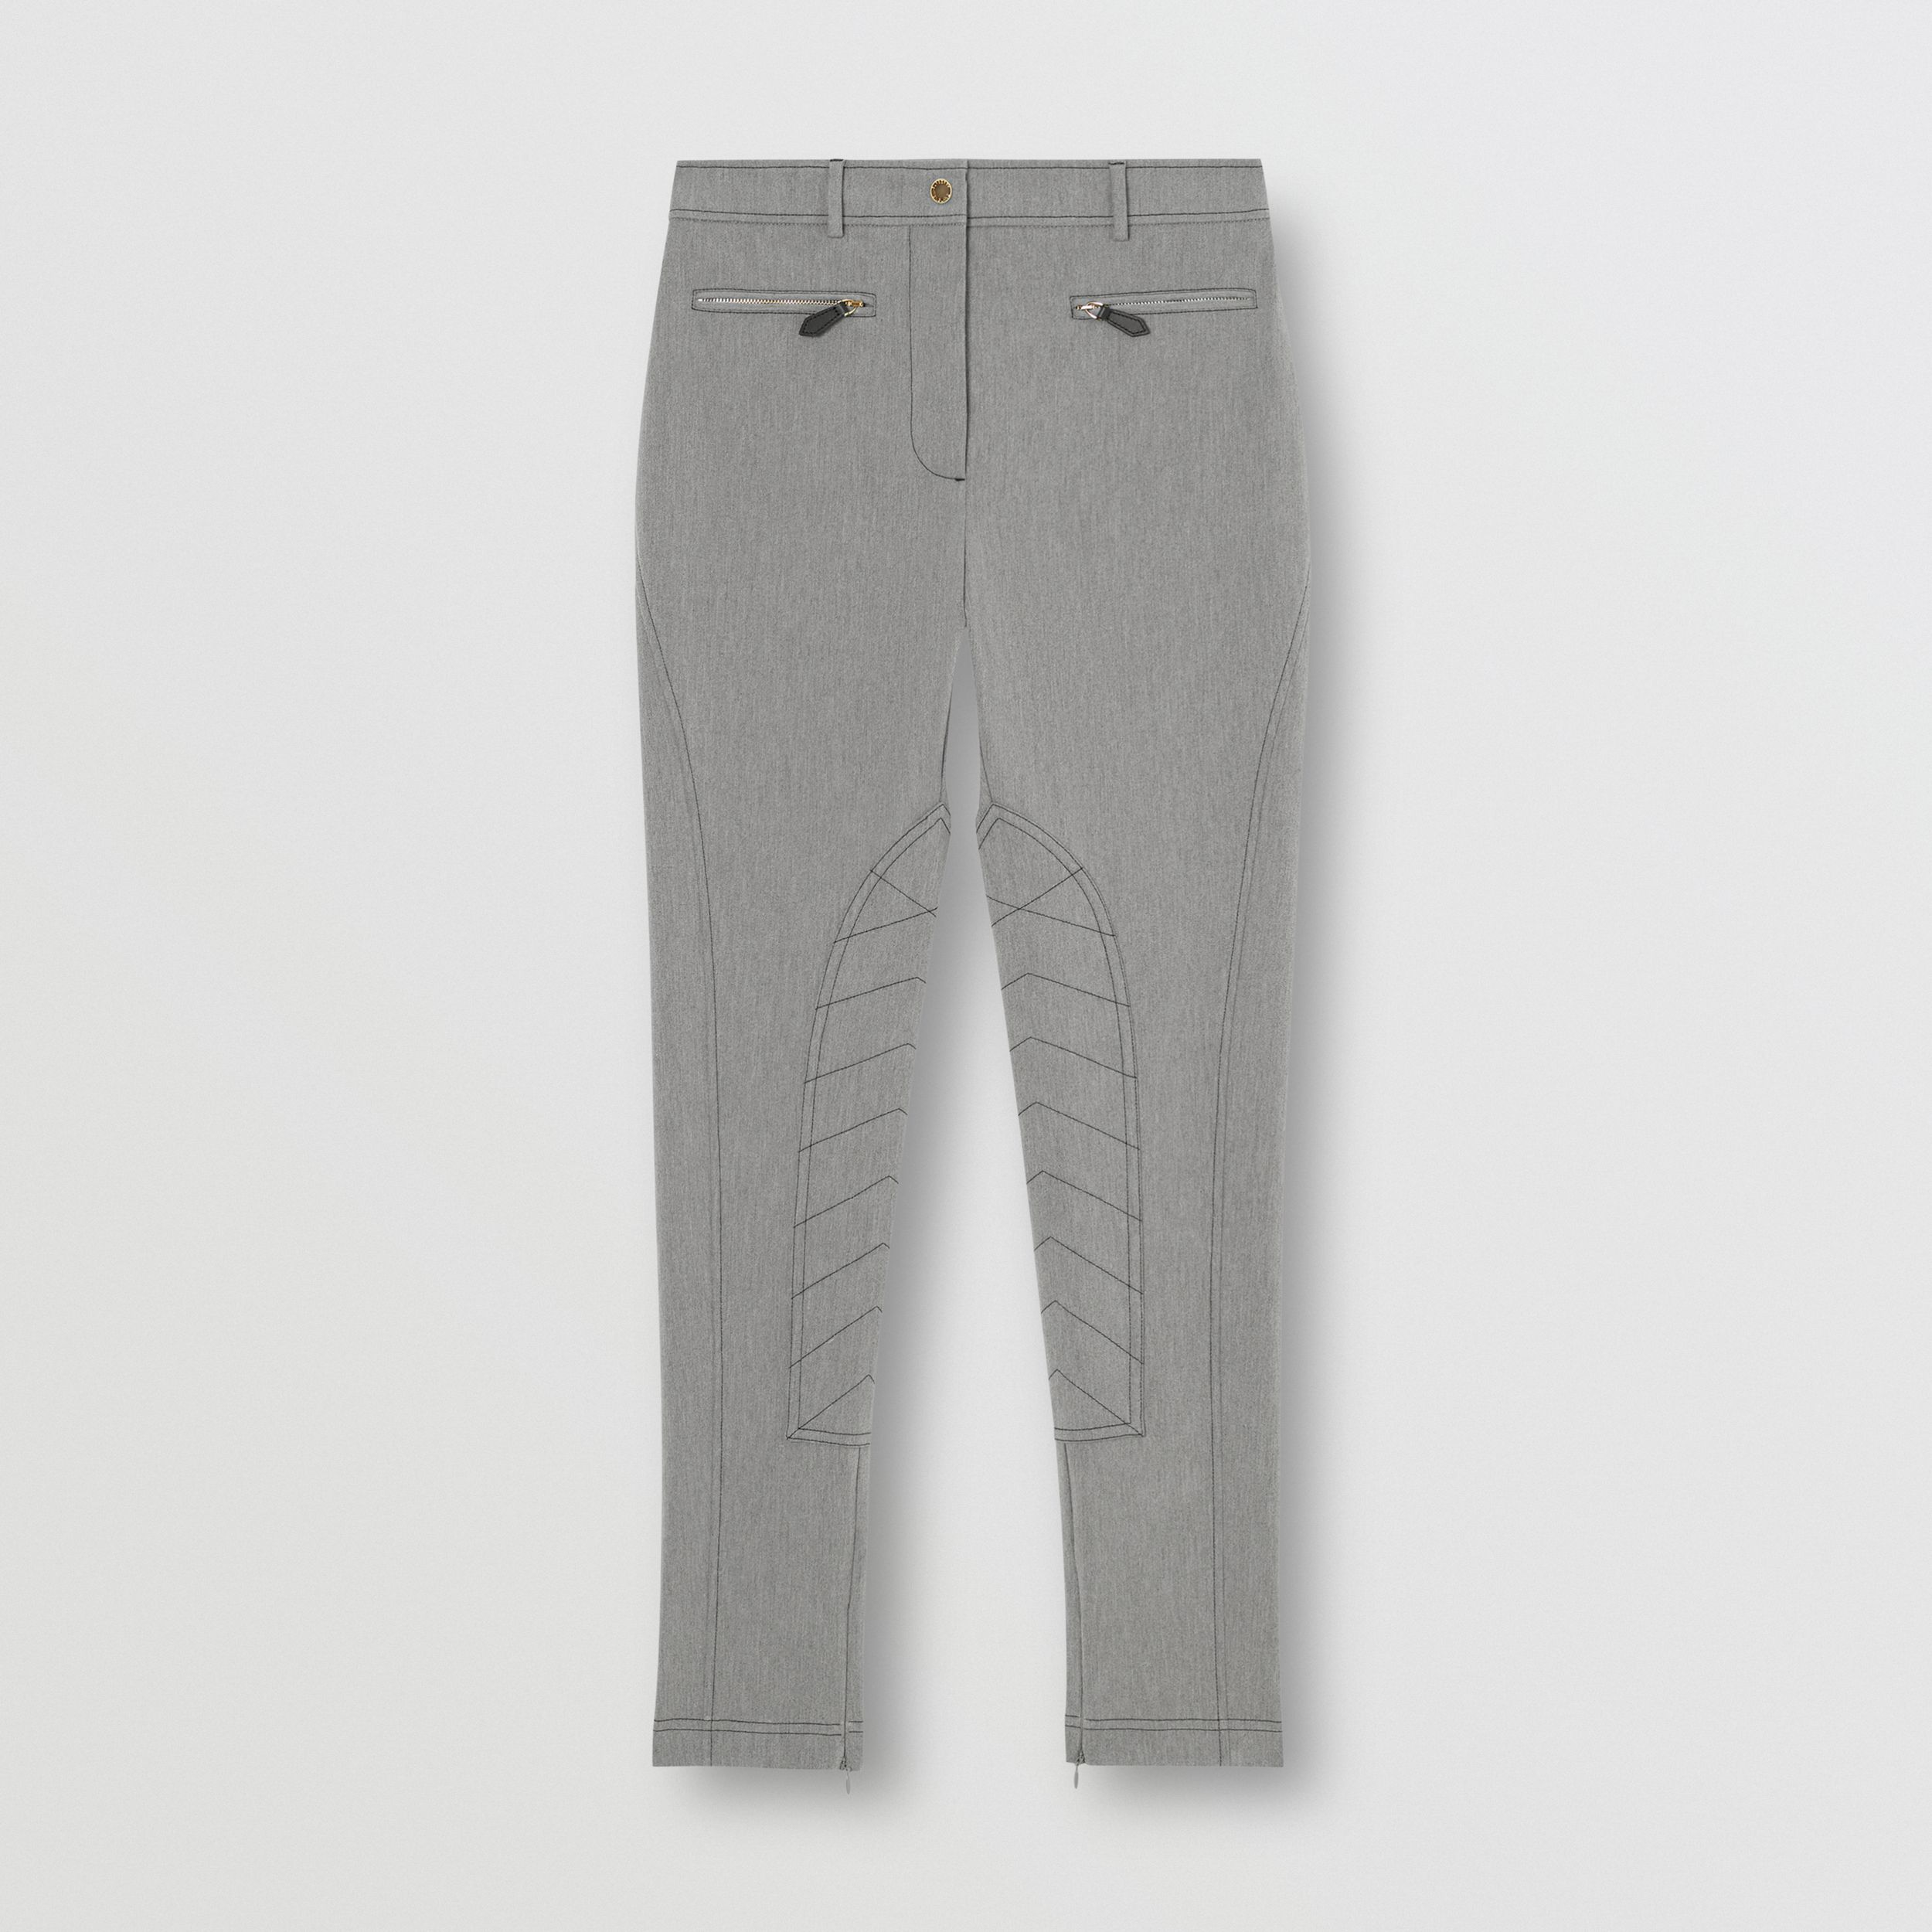 Zip Detail Stretch Cotton Blend Trousers in Grey Melange - Women | Burberry - 4